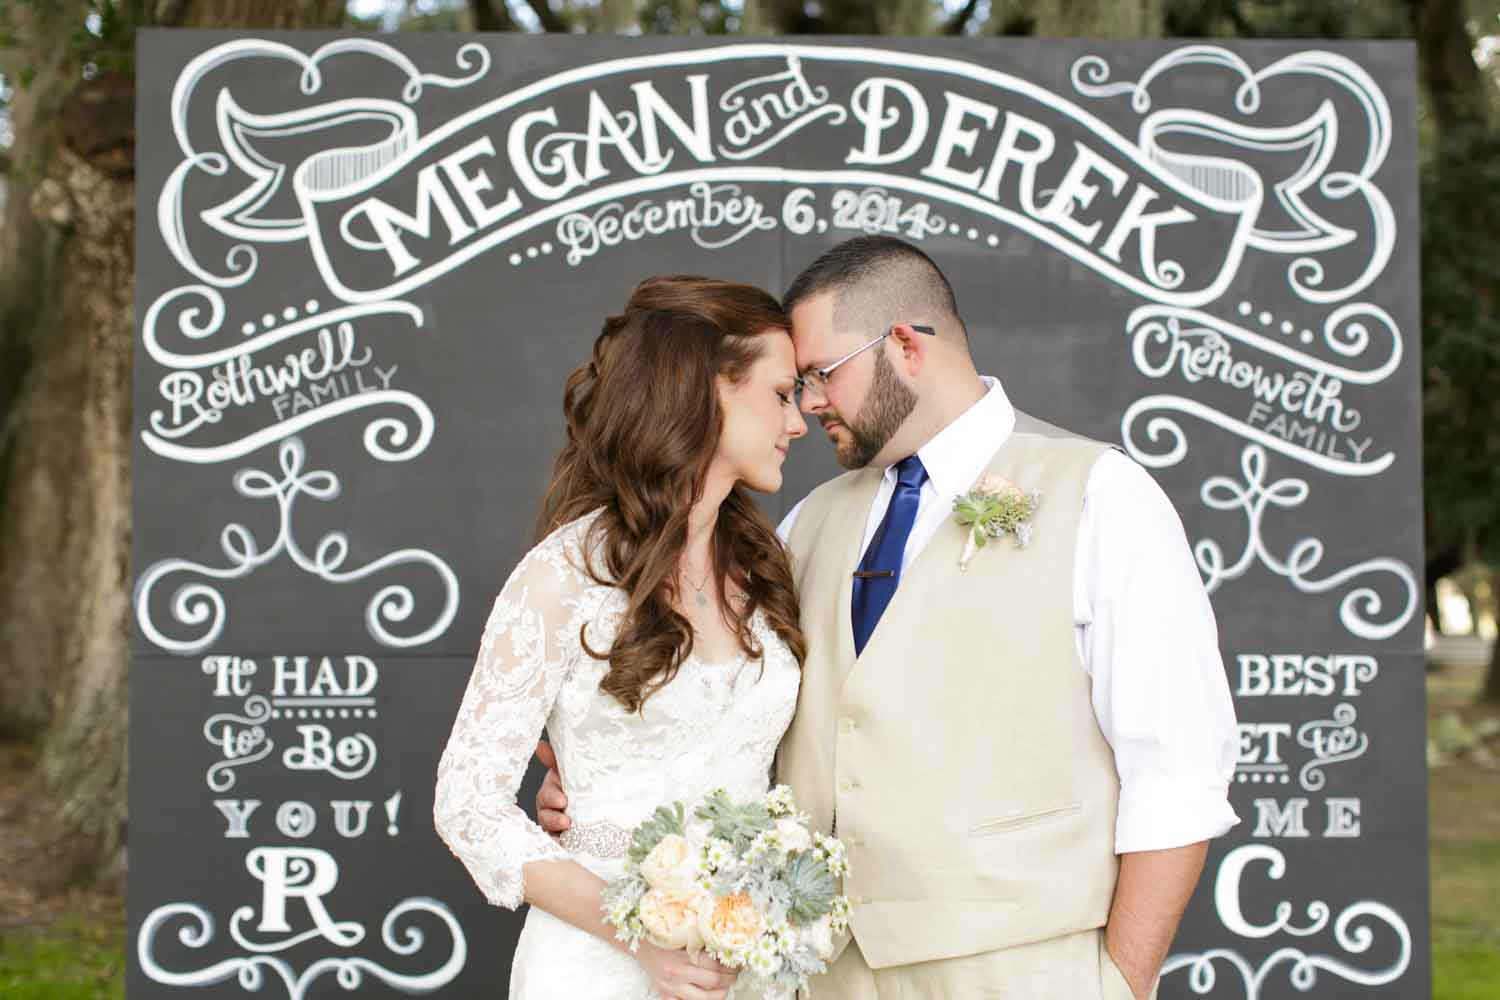 bride and groom standing in front of chalkboard backdrop with their name on it